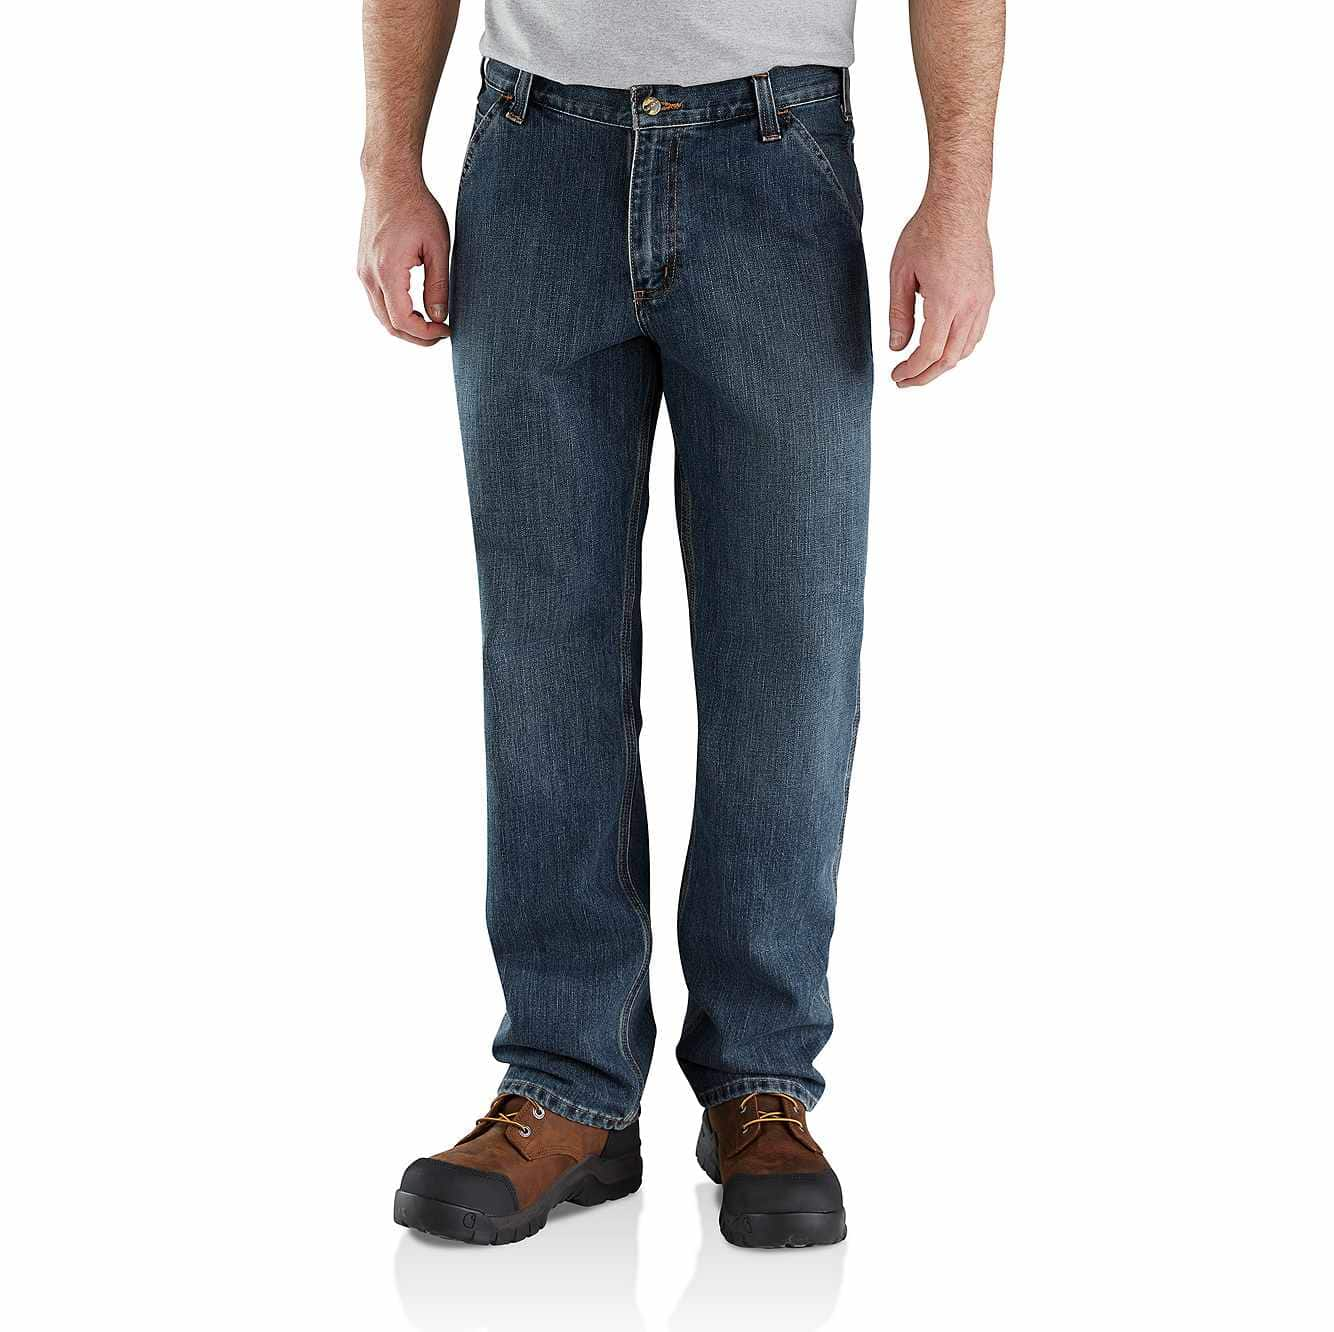 Picture of Relaxed Fit Holter Dungaree Jean in Blue Ridge